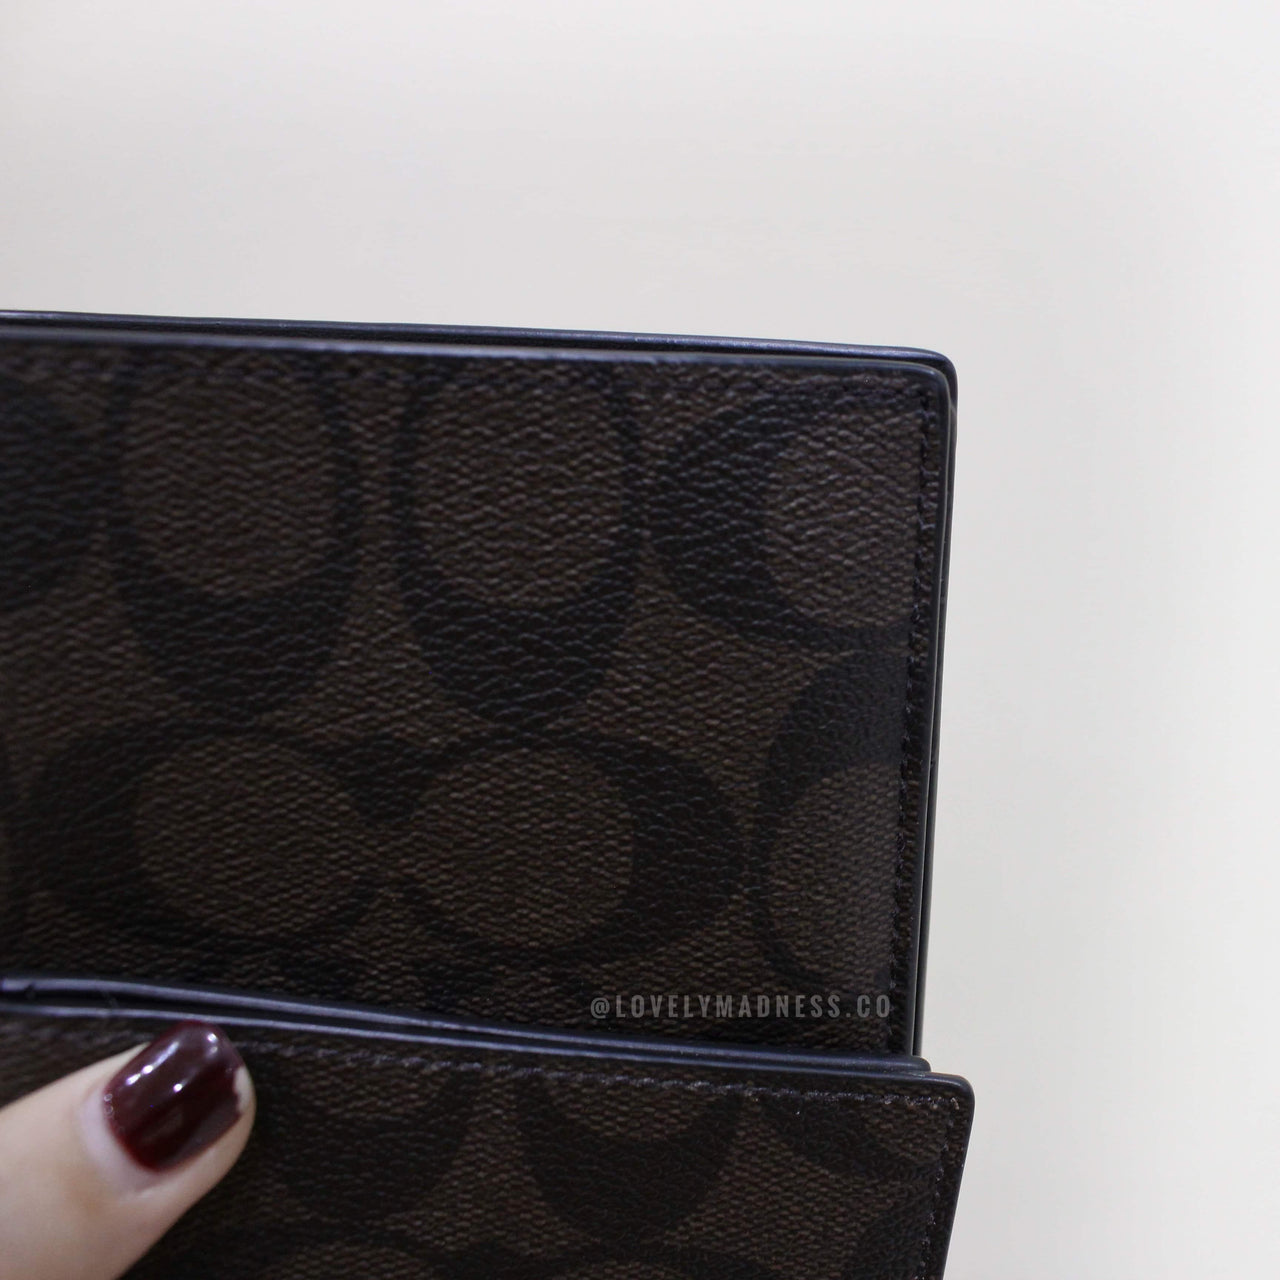 COACH COMPACT ID WALLET IN SIGNATURE - Lovely Madness